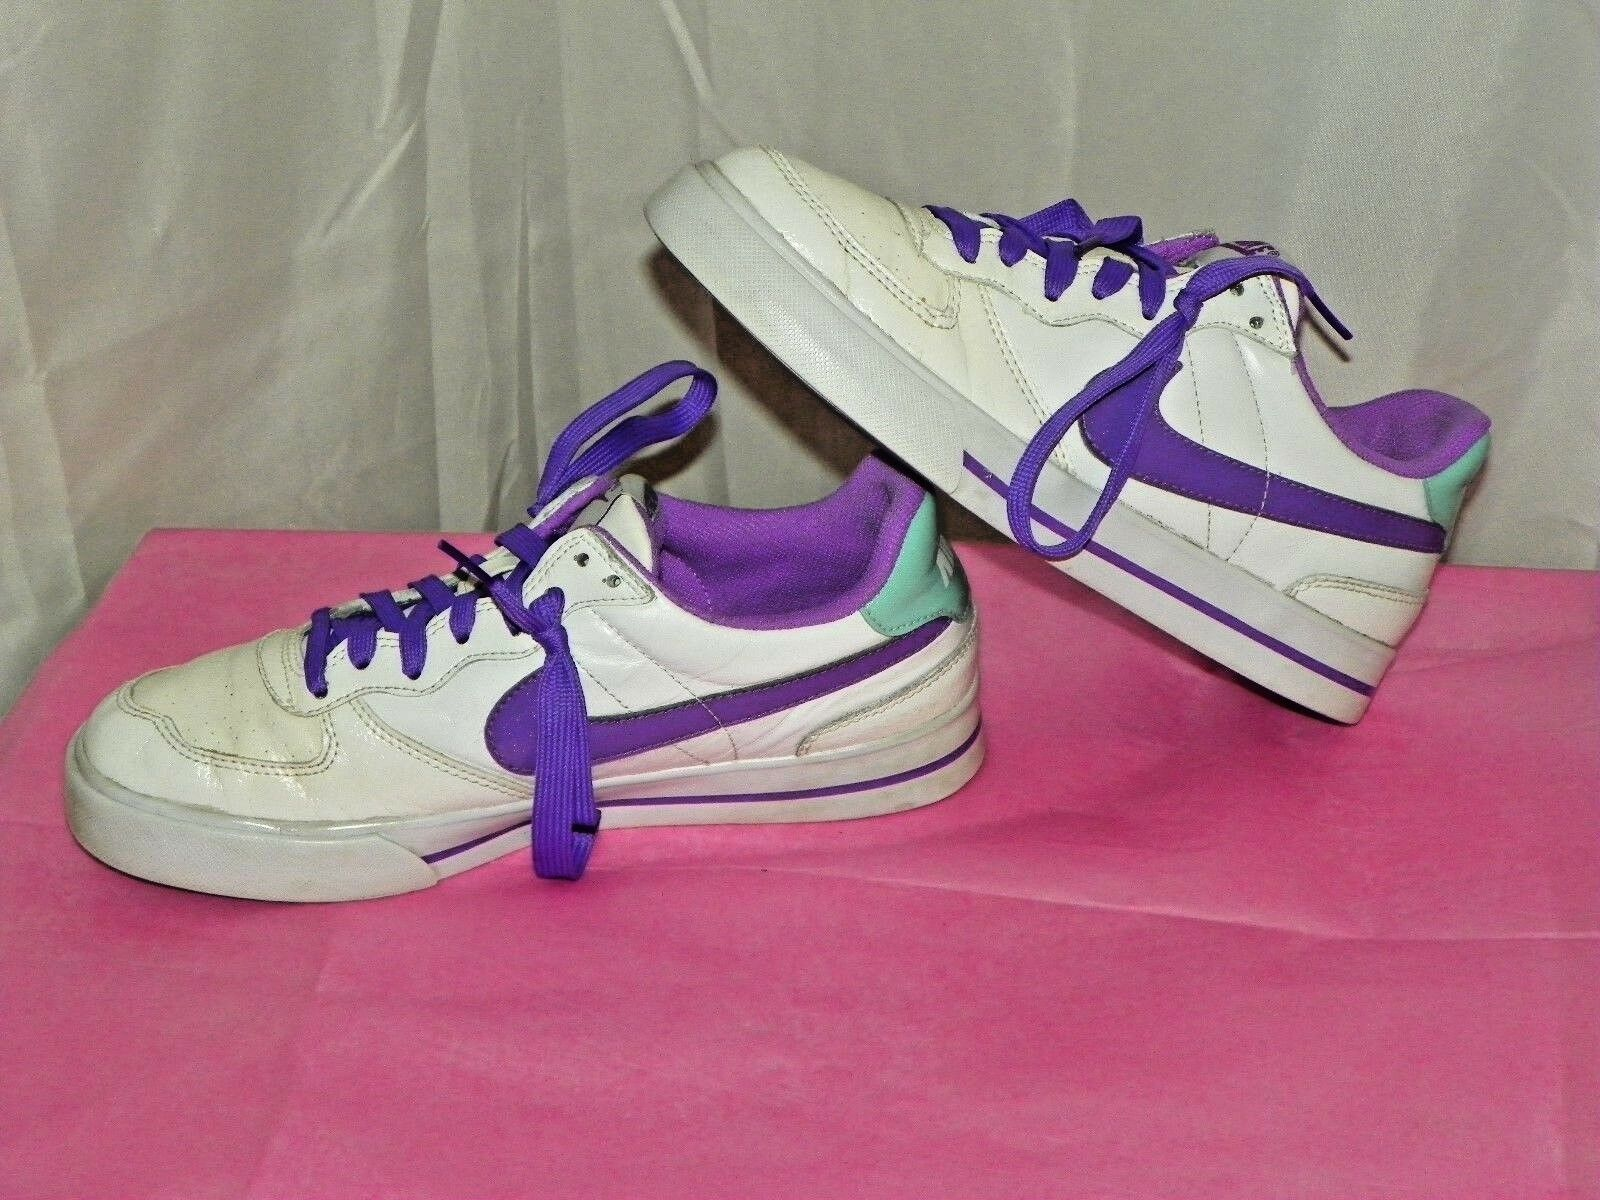 NIKE WOMENS' SWEET ACE 83 ATHLETIC SHOES SIZE 8.5 WHITE/PURPLE/GREEN 407992-107 Cheap and beautiful fashion